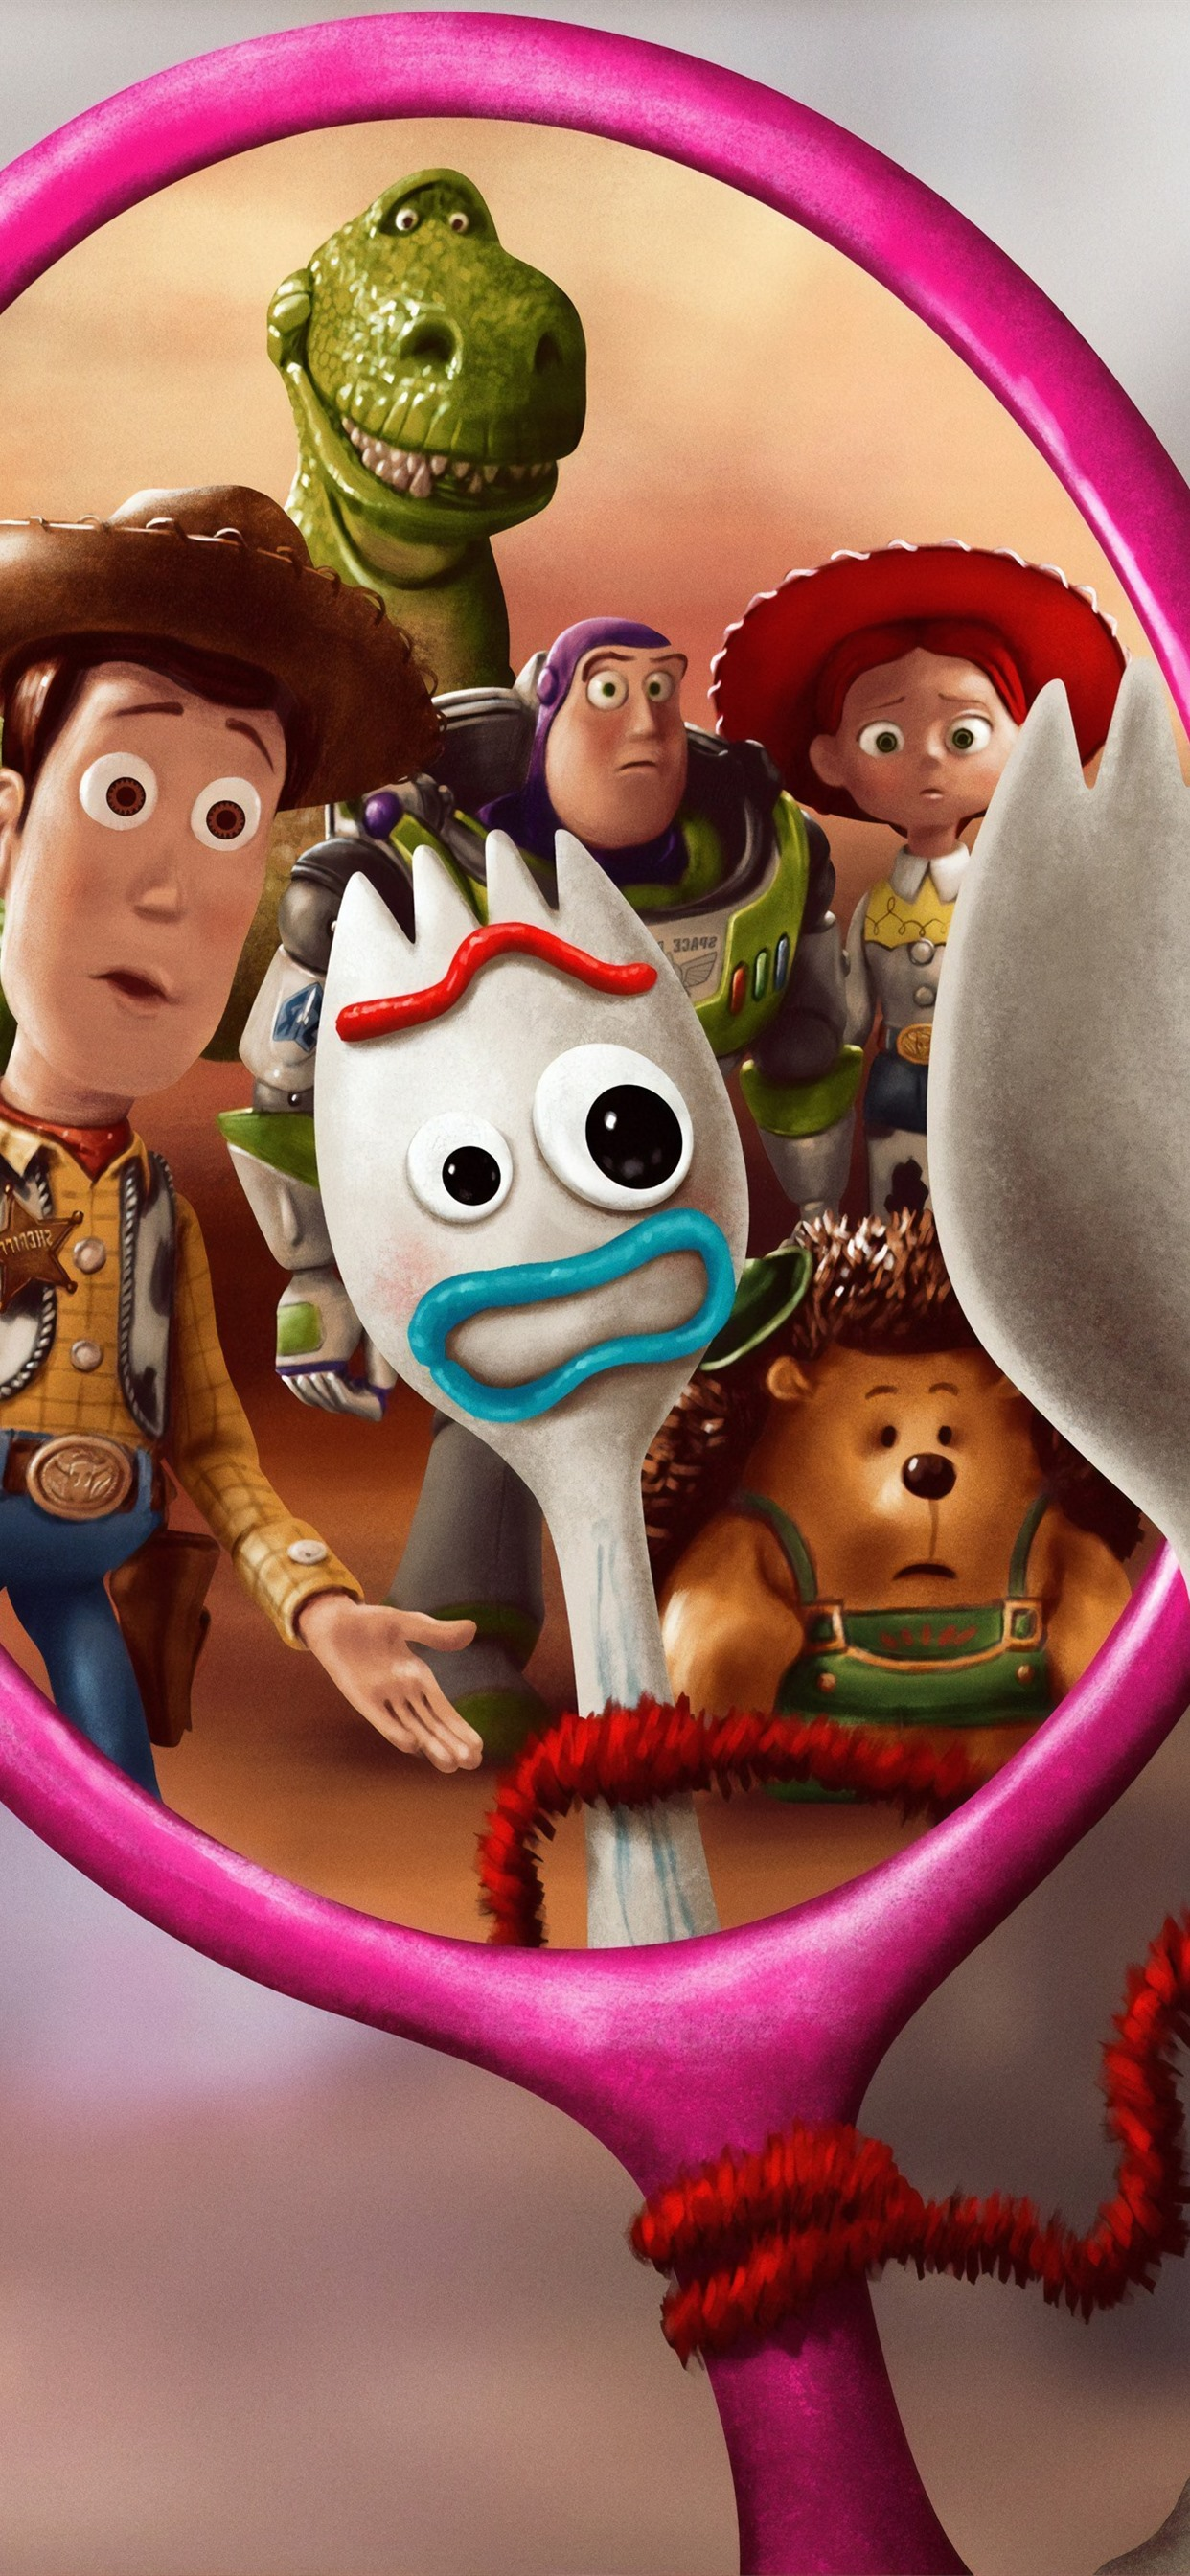 Disney Movie Toy Story 4 1242x2688 Iphone Xs Max Wallpaper